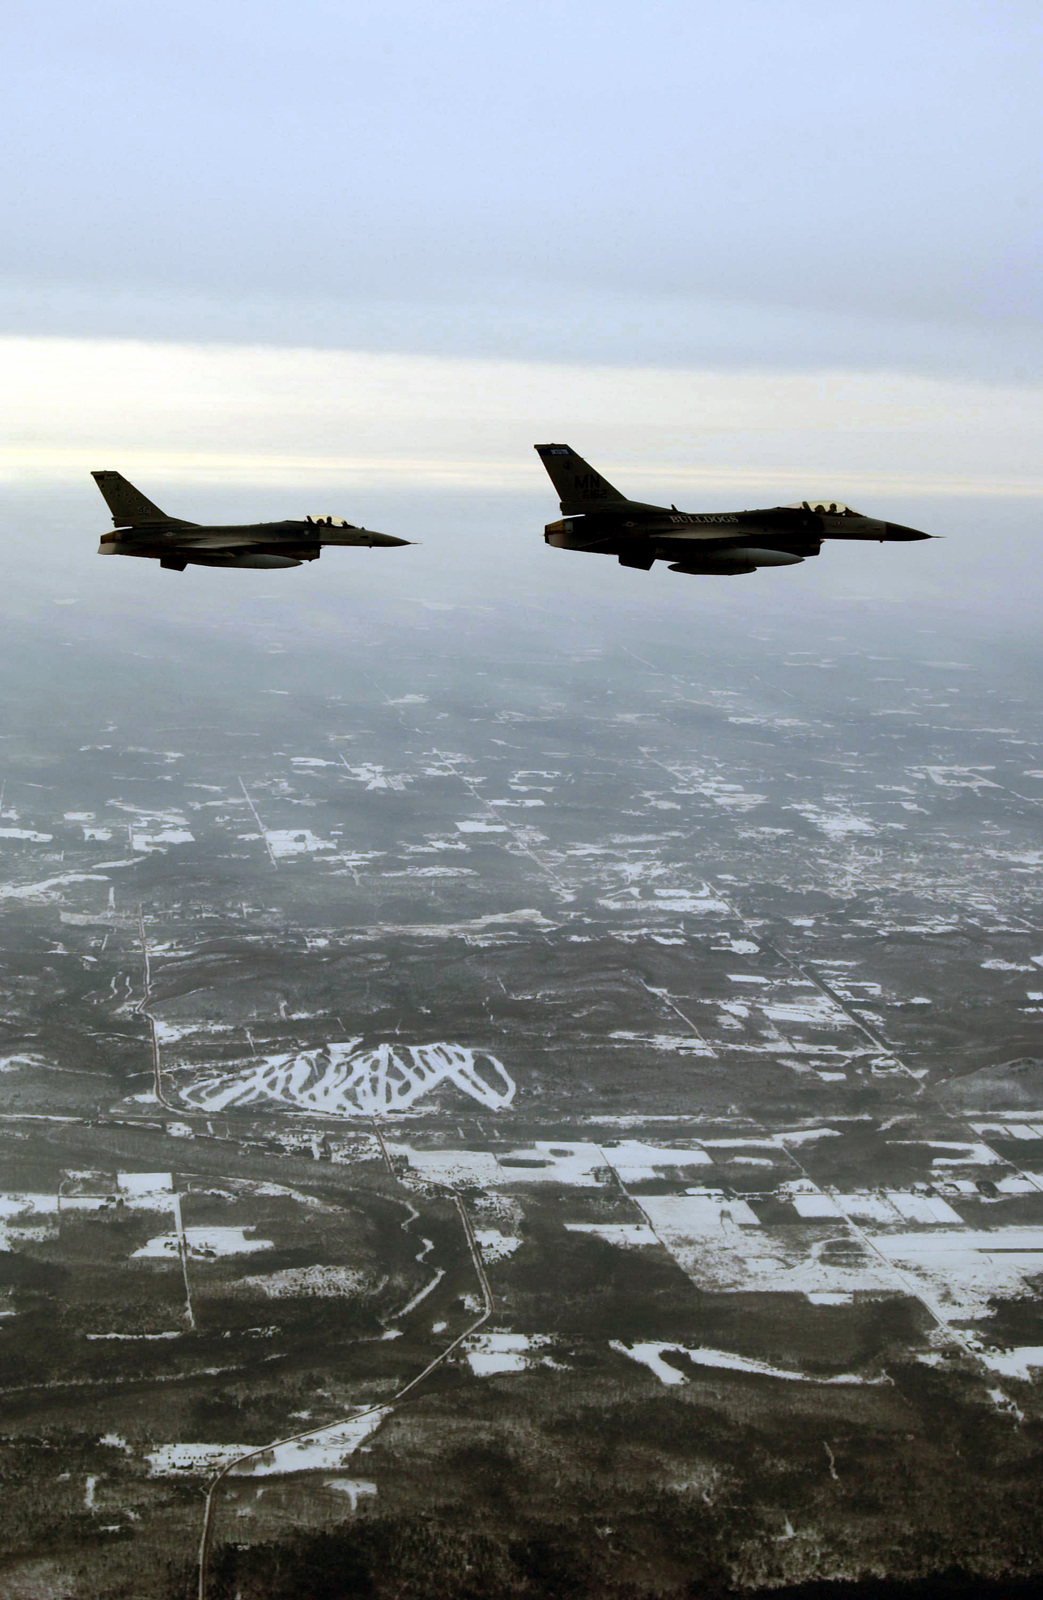 A US Air Force (USAF) F-16A Fighting Falcon, 148th Fighter Wing (FW), escorts home the first of many F-16C Fighting Falcons. The F-16C, on the right, is enroute from Syracuse, New York, to the 148th FW, Minnesota Air National Guard Base (ANGB), in Duluth